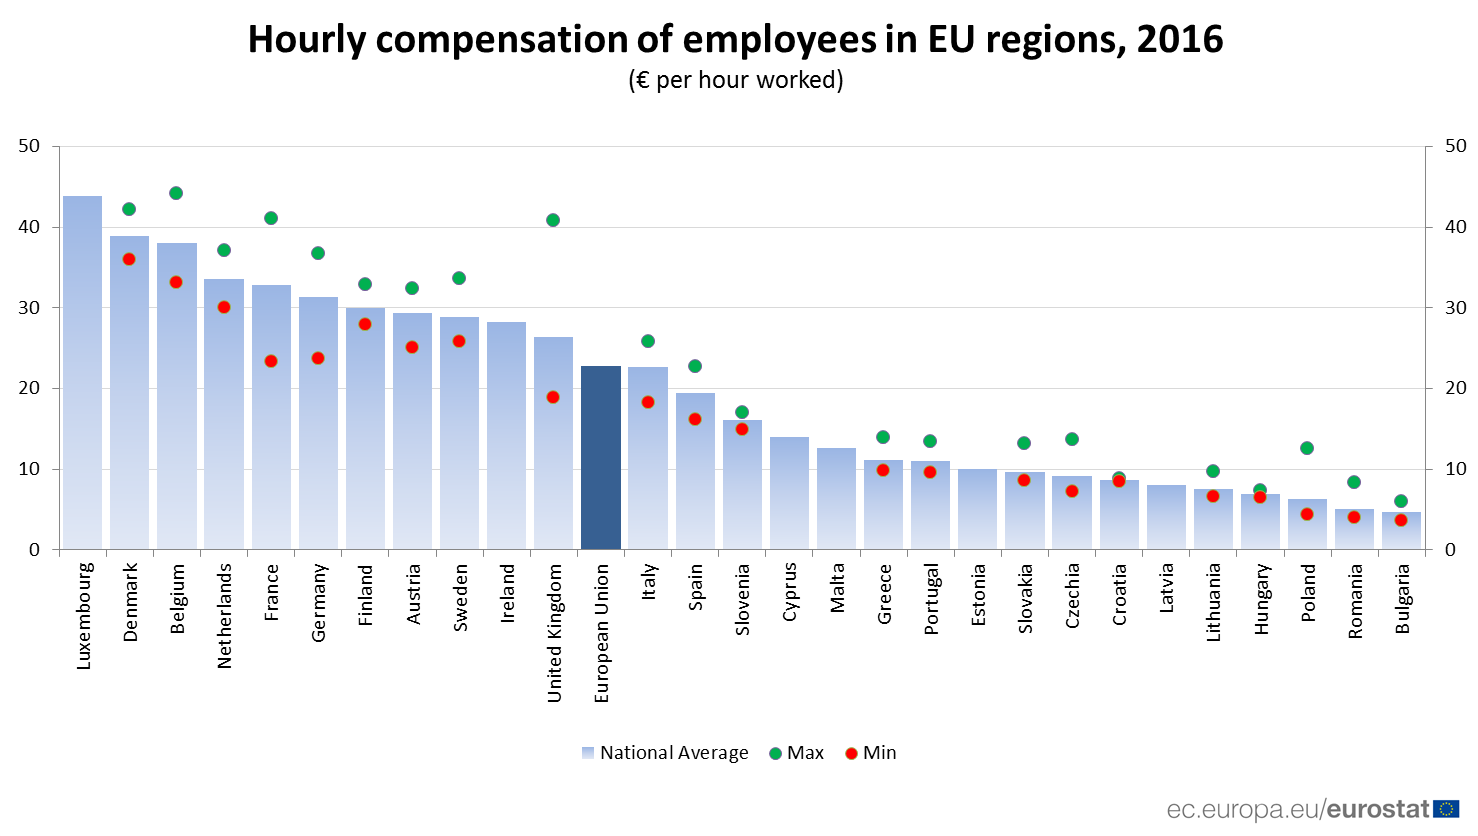 Bar chart showing hourly compensation of employees in EU regions, 2016